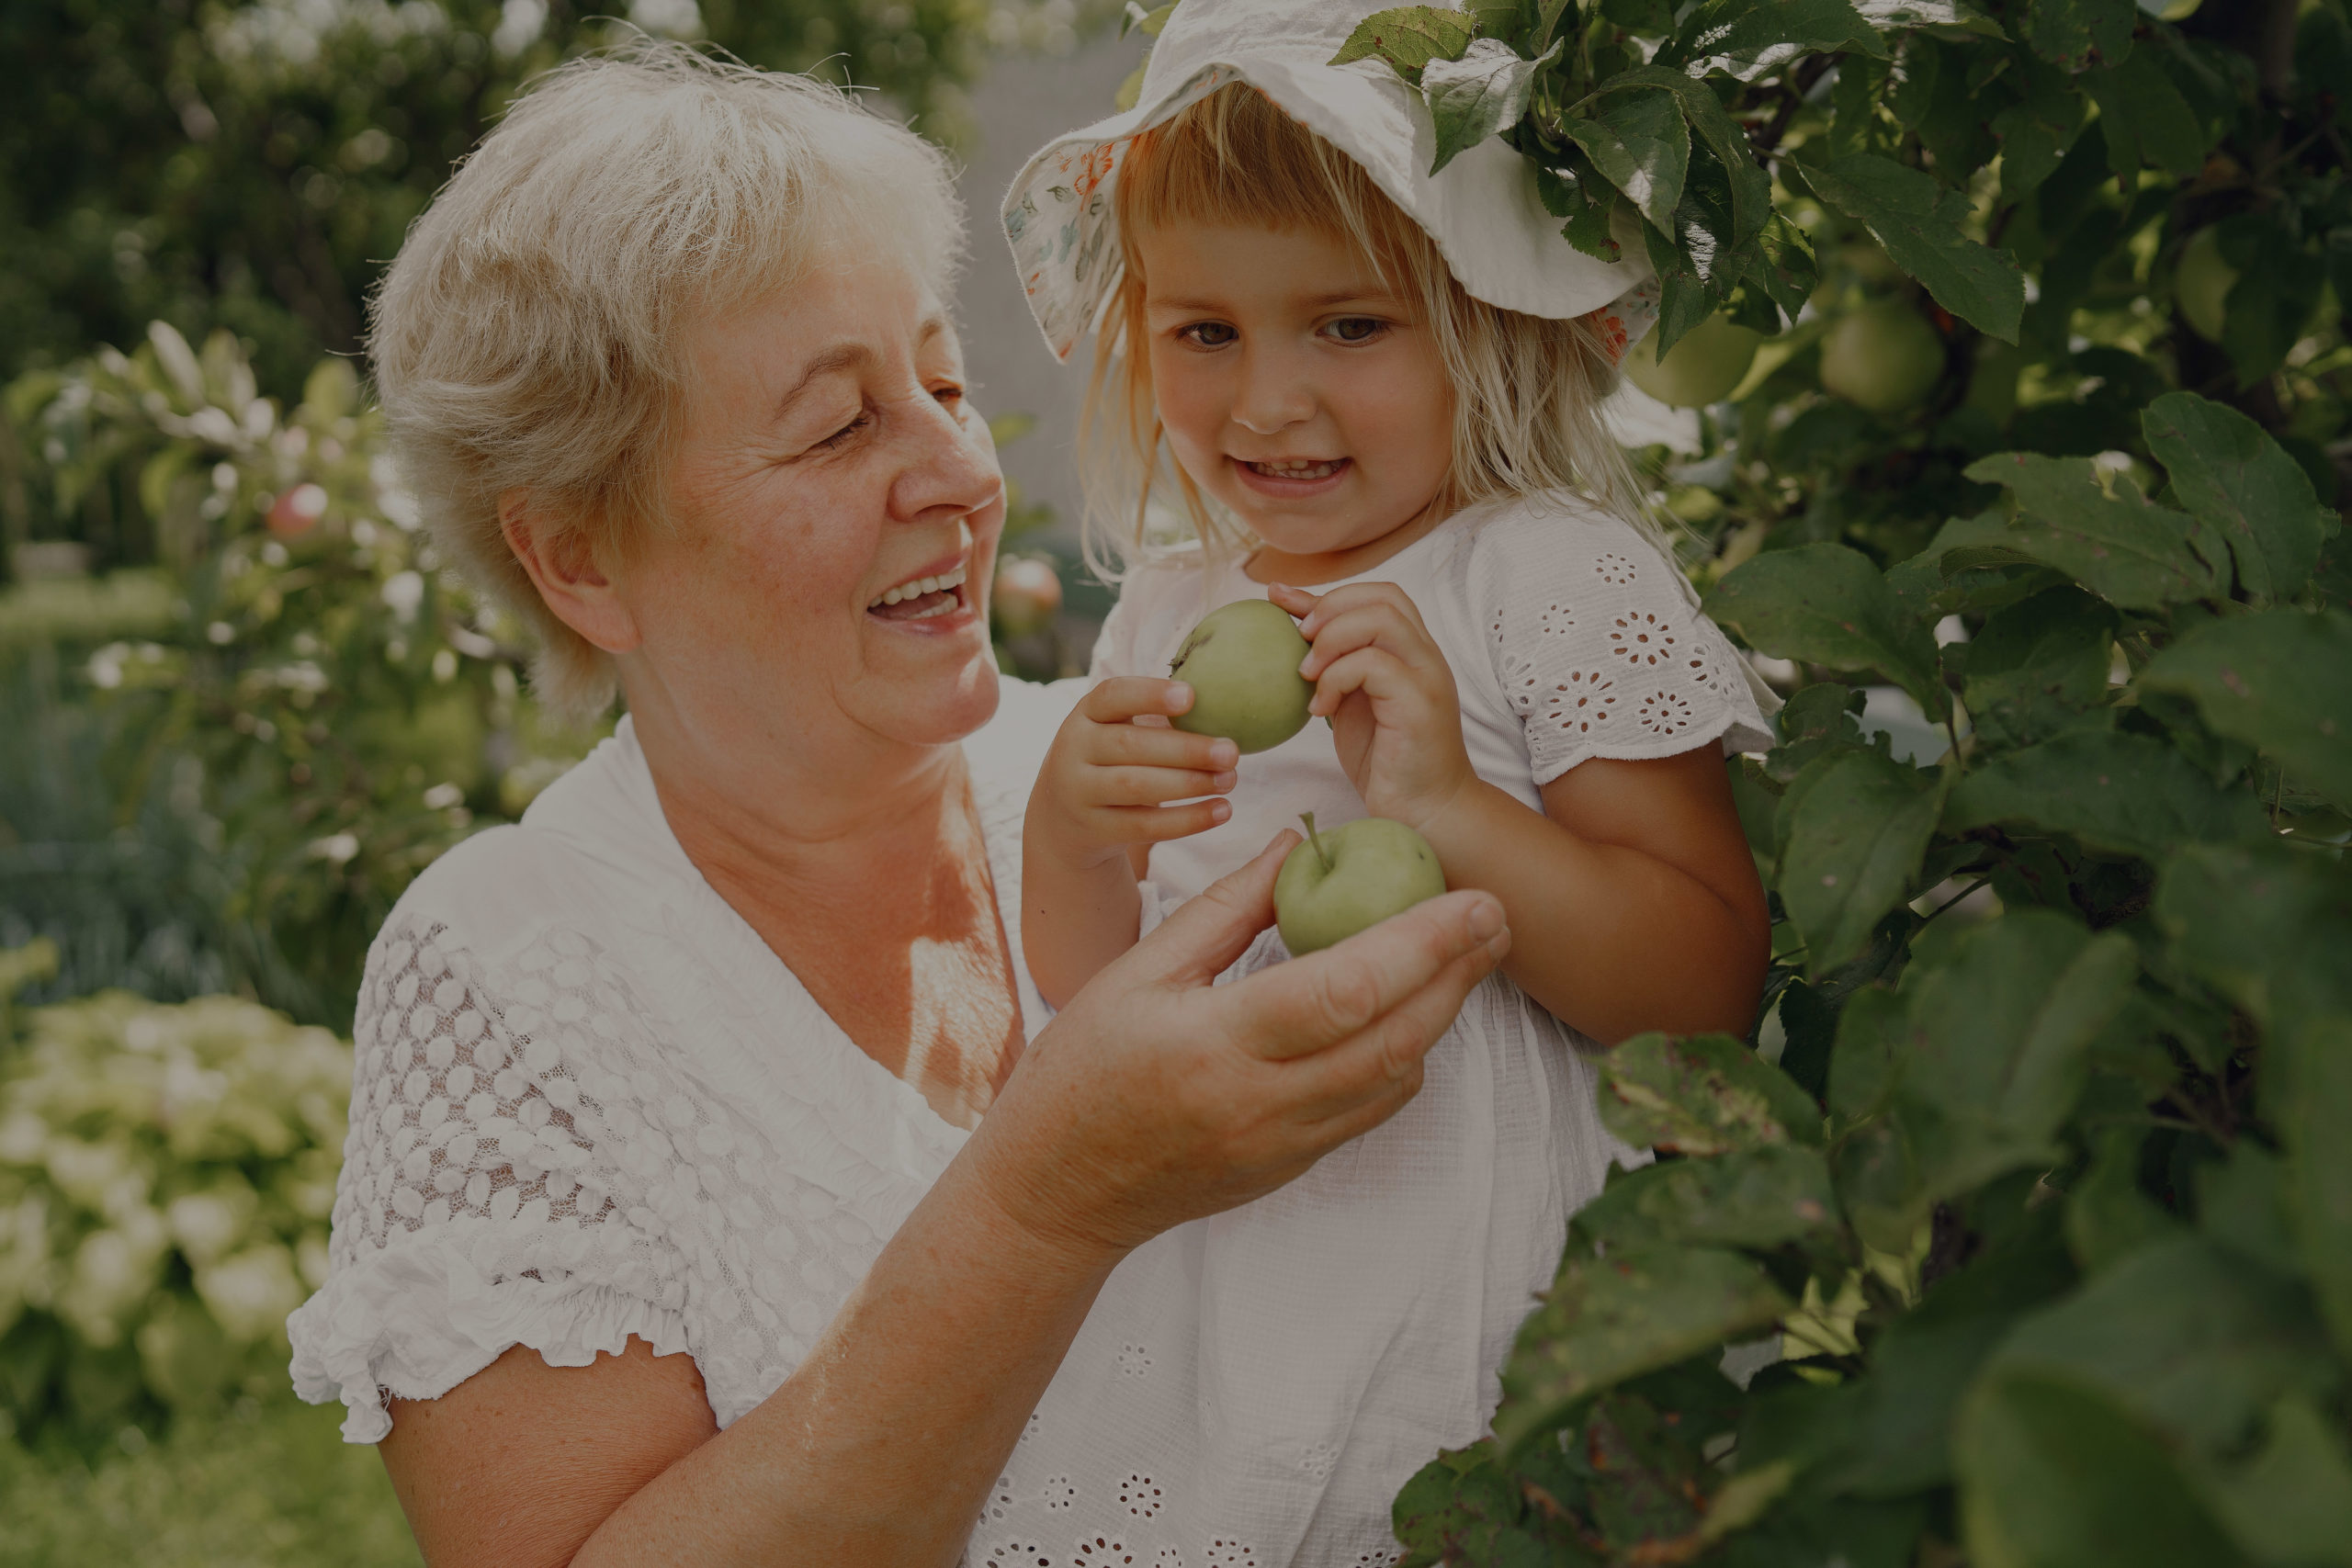 Grandmother and granddaughter together, hugging and joyfully laughing in a Flowering apricot garden in April. Family outdoors lifestyle.